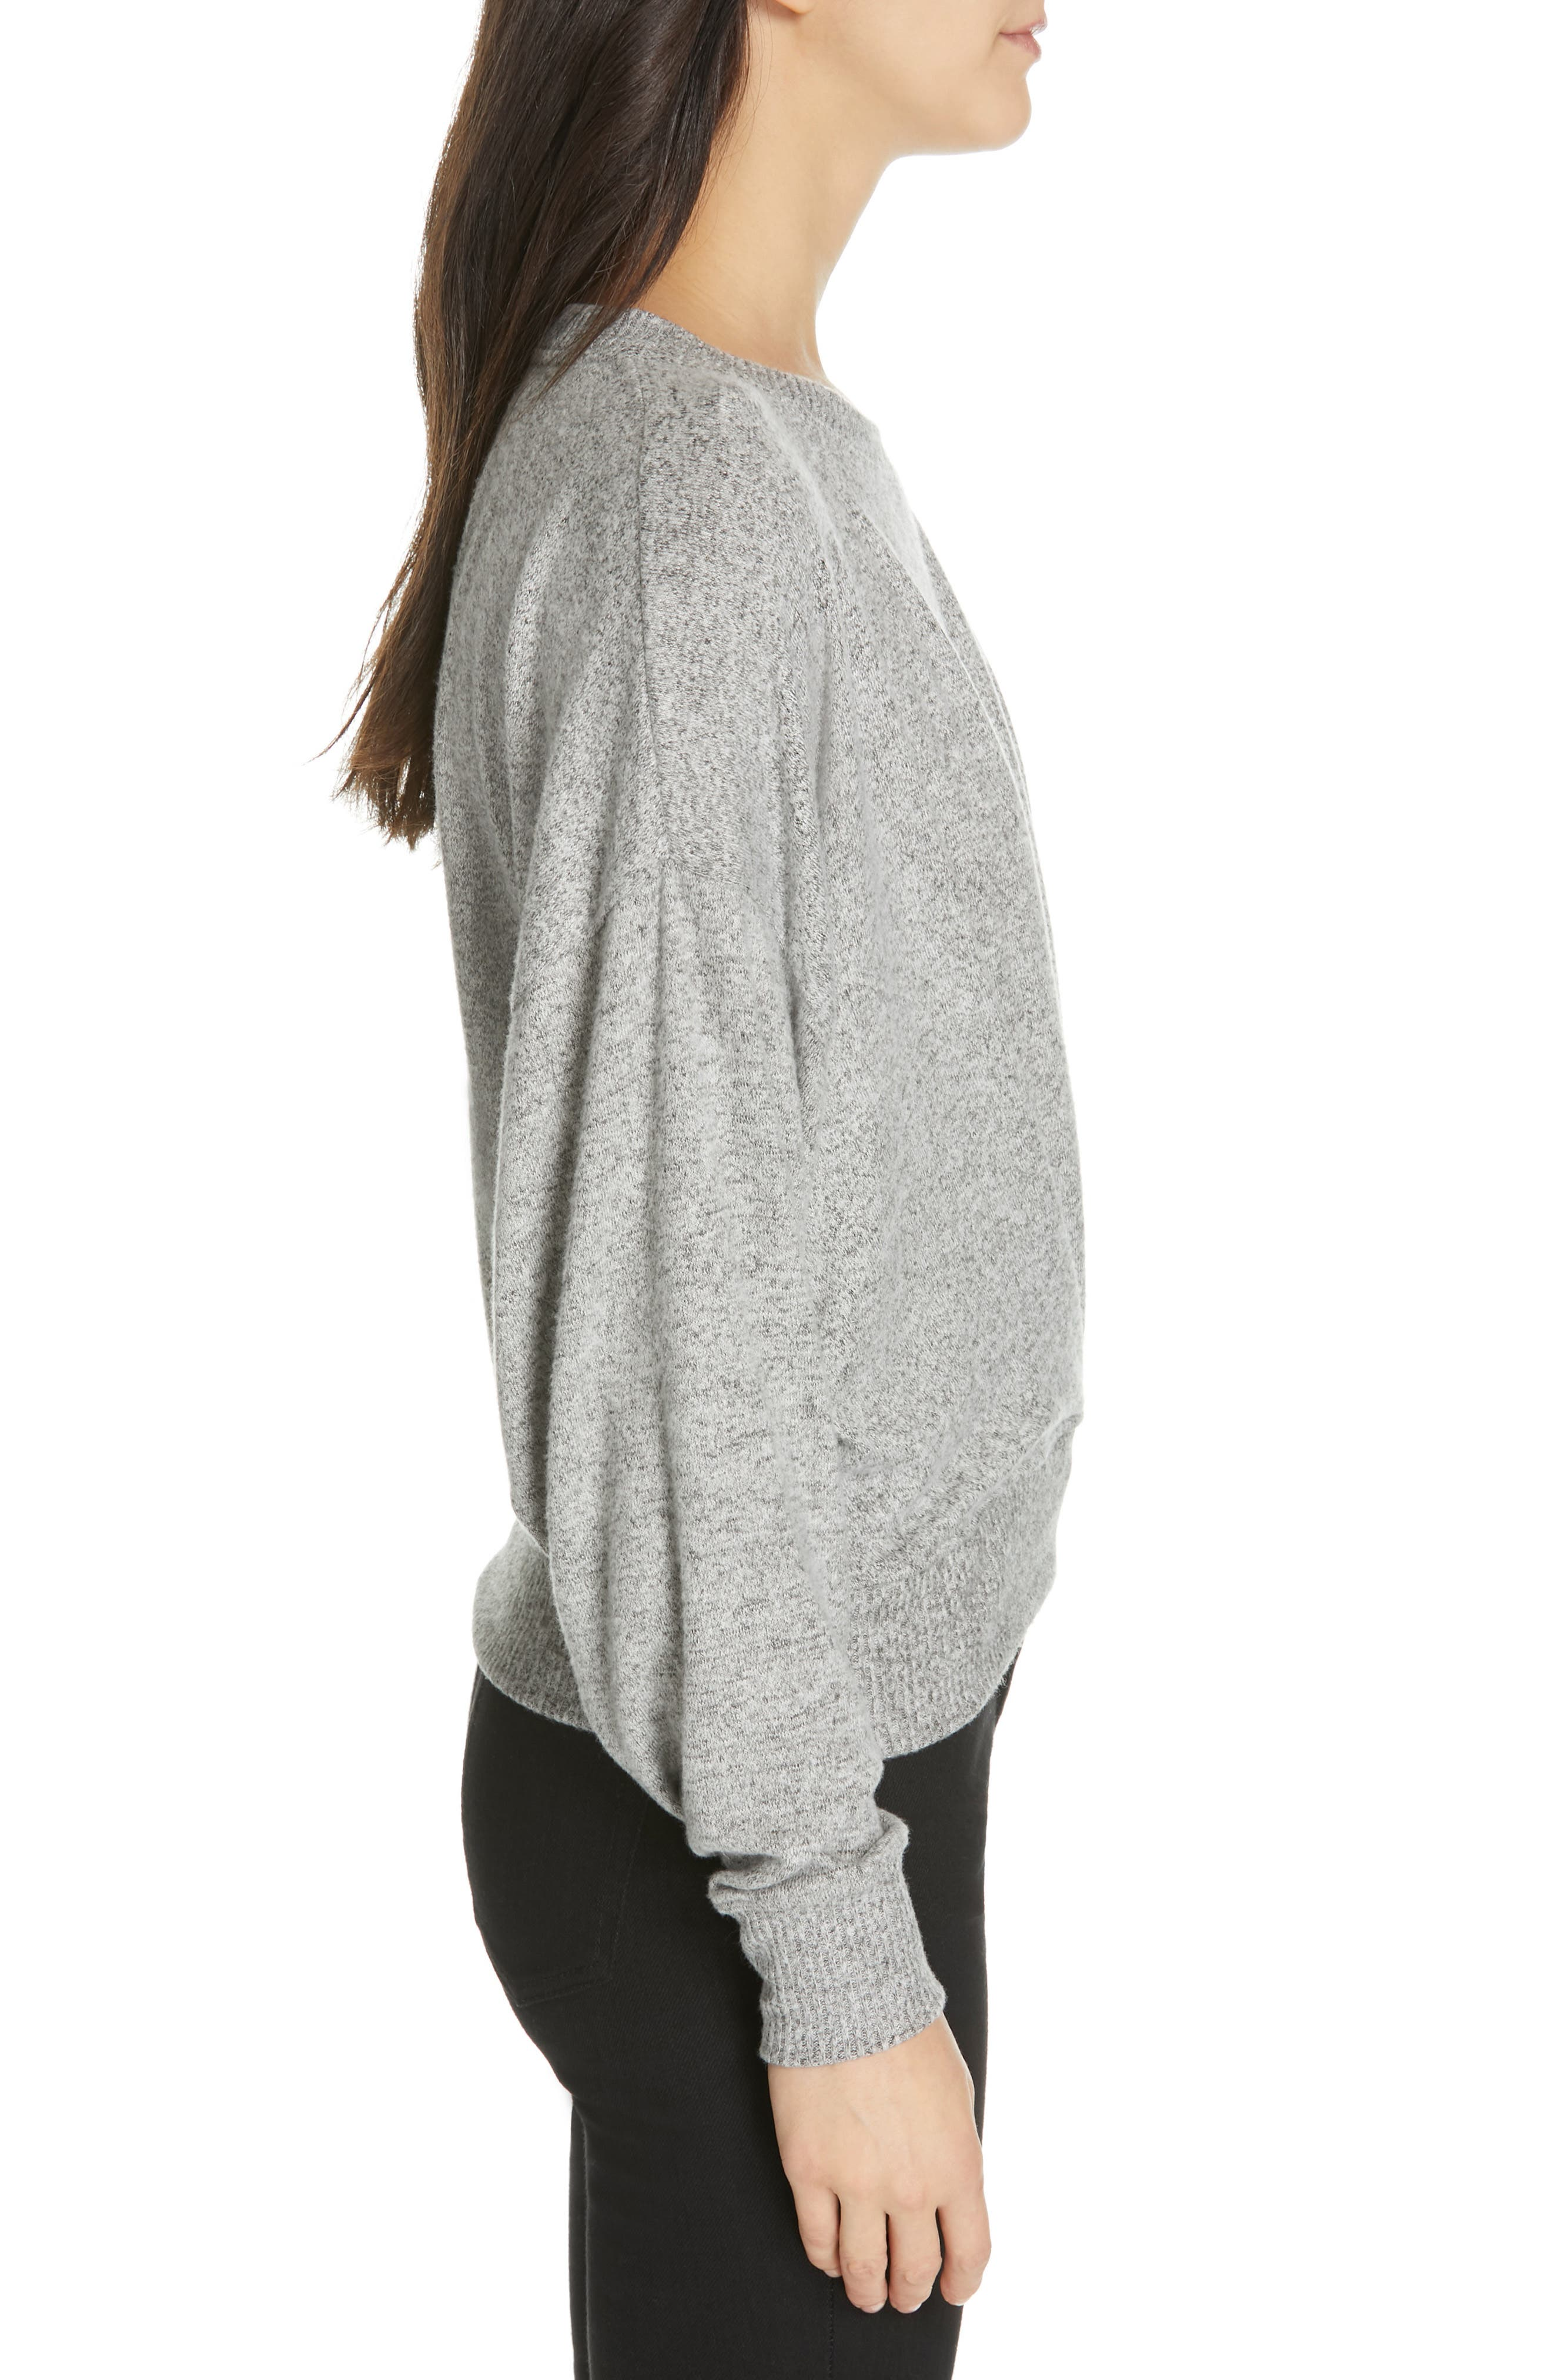 Yerrick Sweater,                             Alternate thumbnail 3, color,                             HEATHER GREY